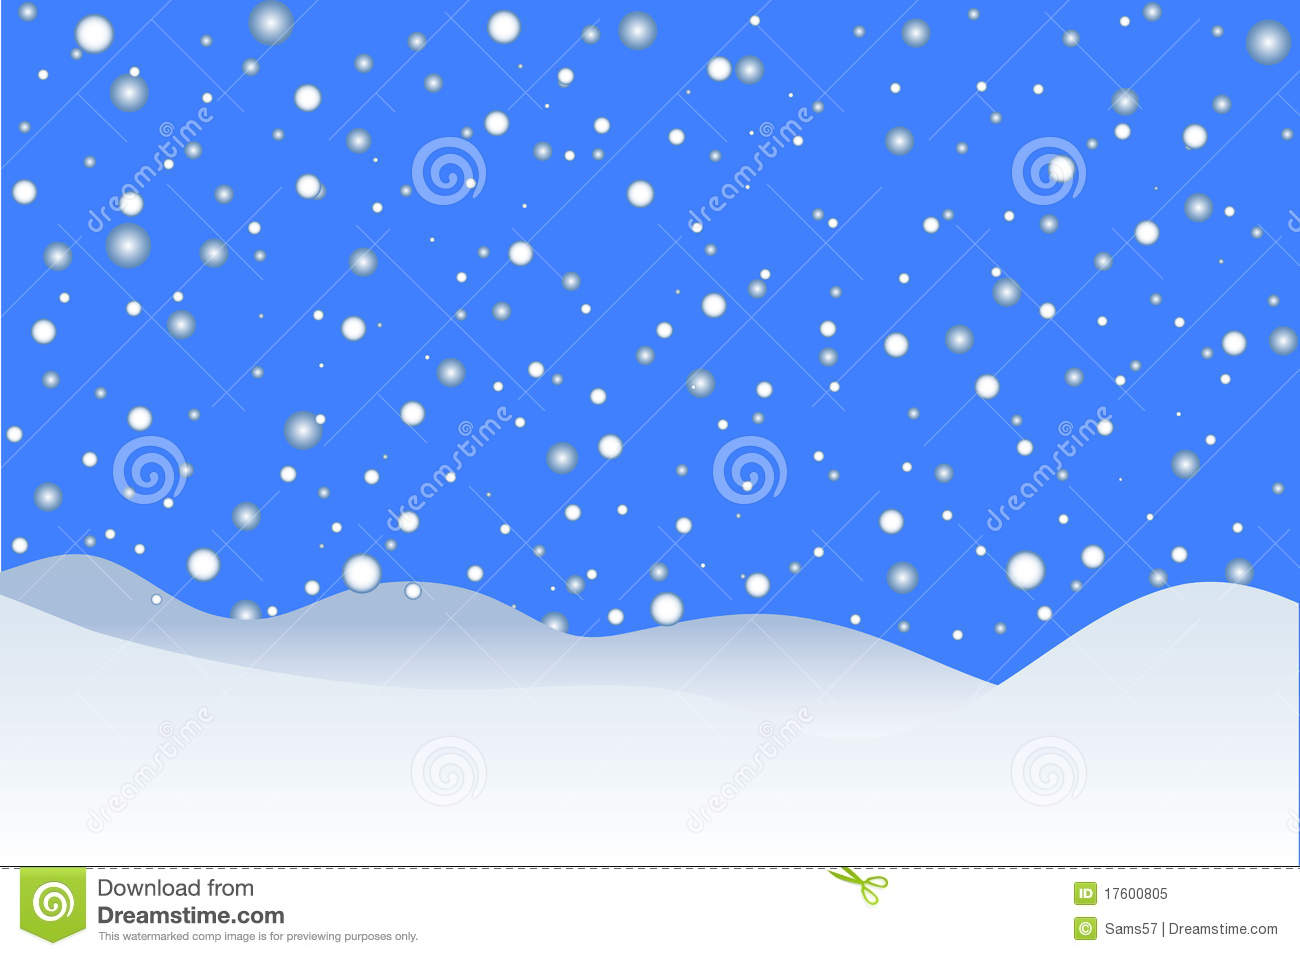 Dream About Wallpaper Falling Off Snowing Winter Background Stock Vector Image Of Beauty